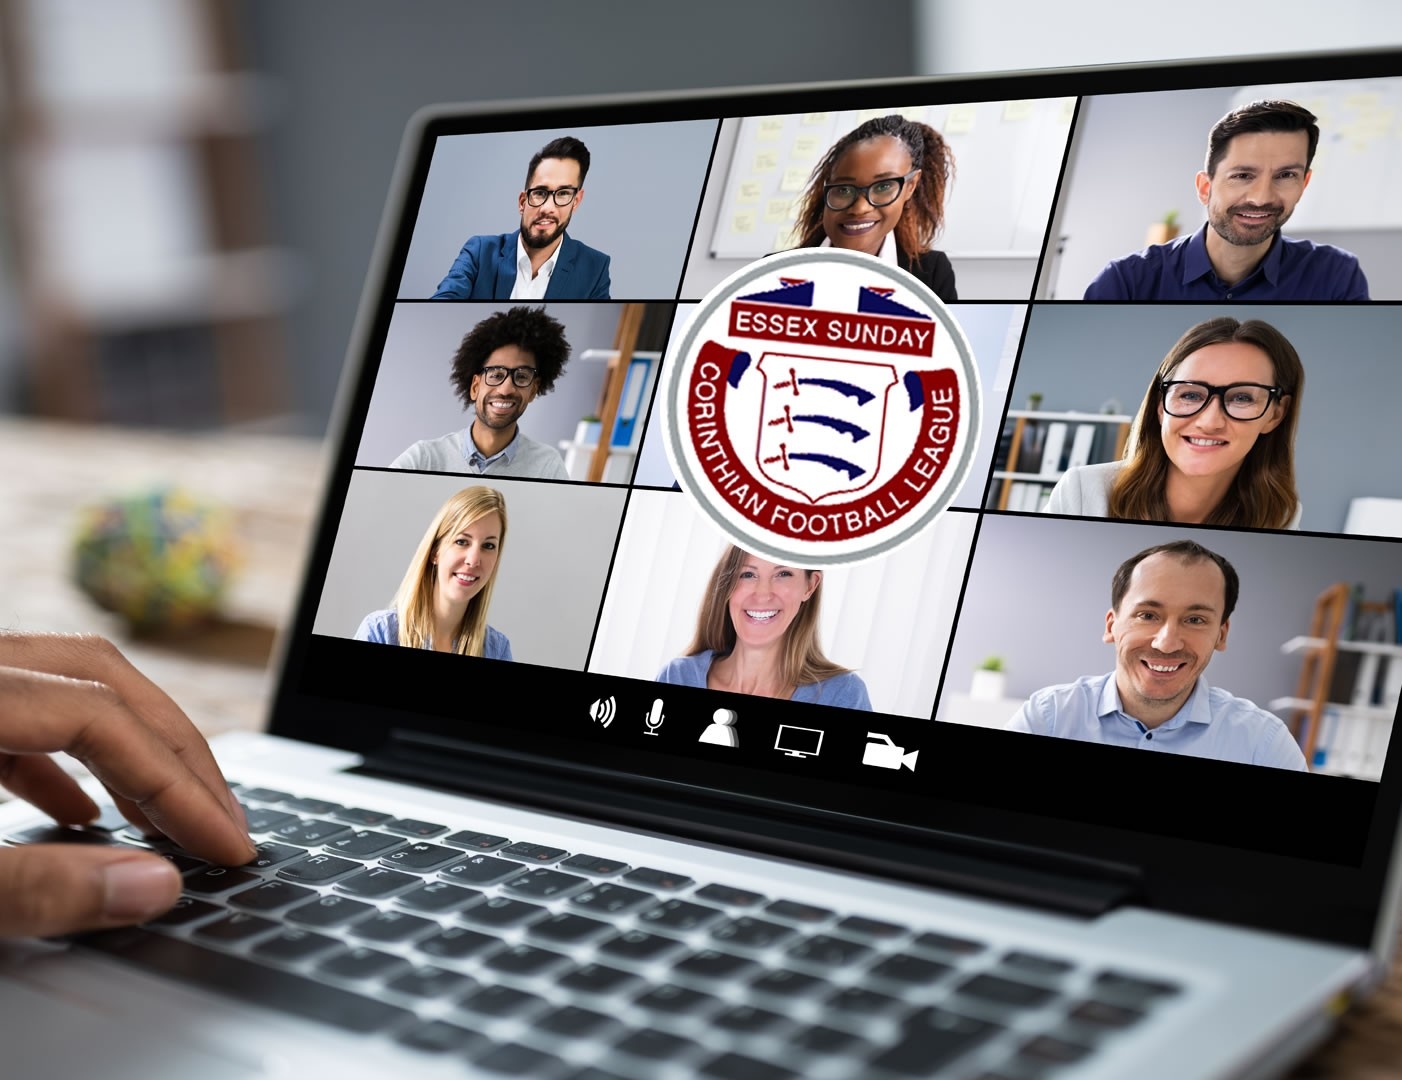 Virtual AGM takes place this Wednesday evening